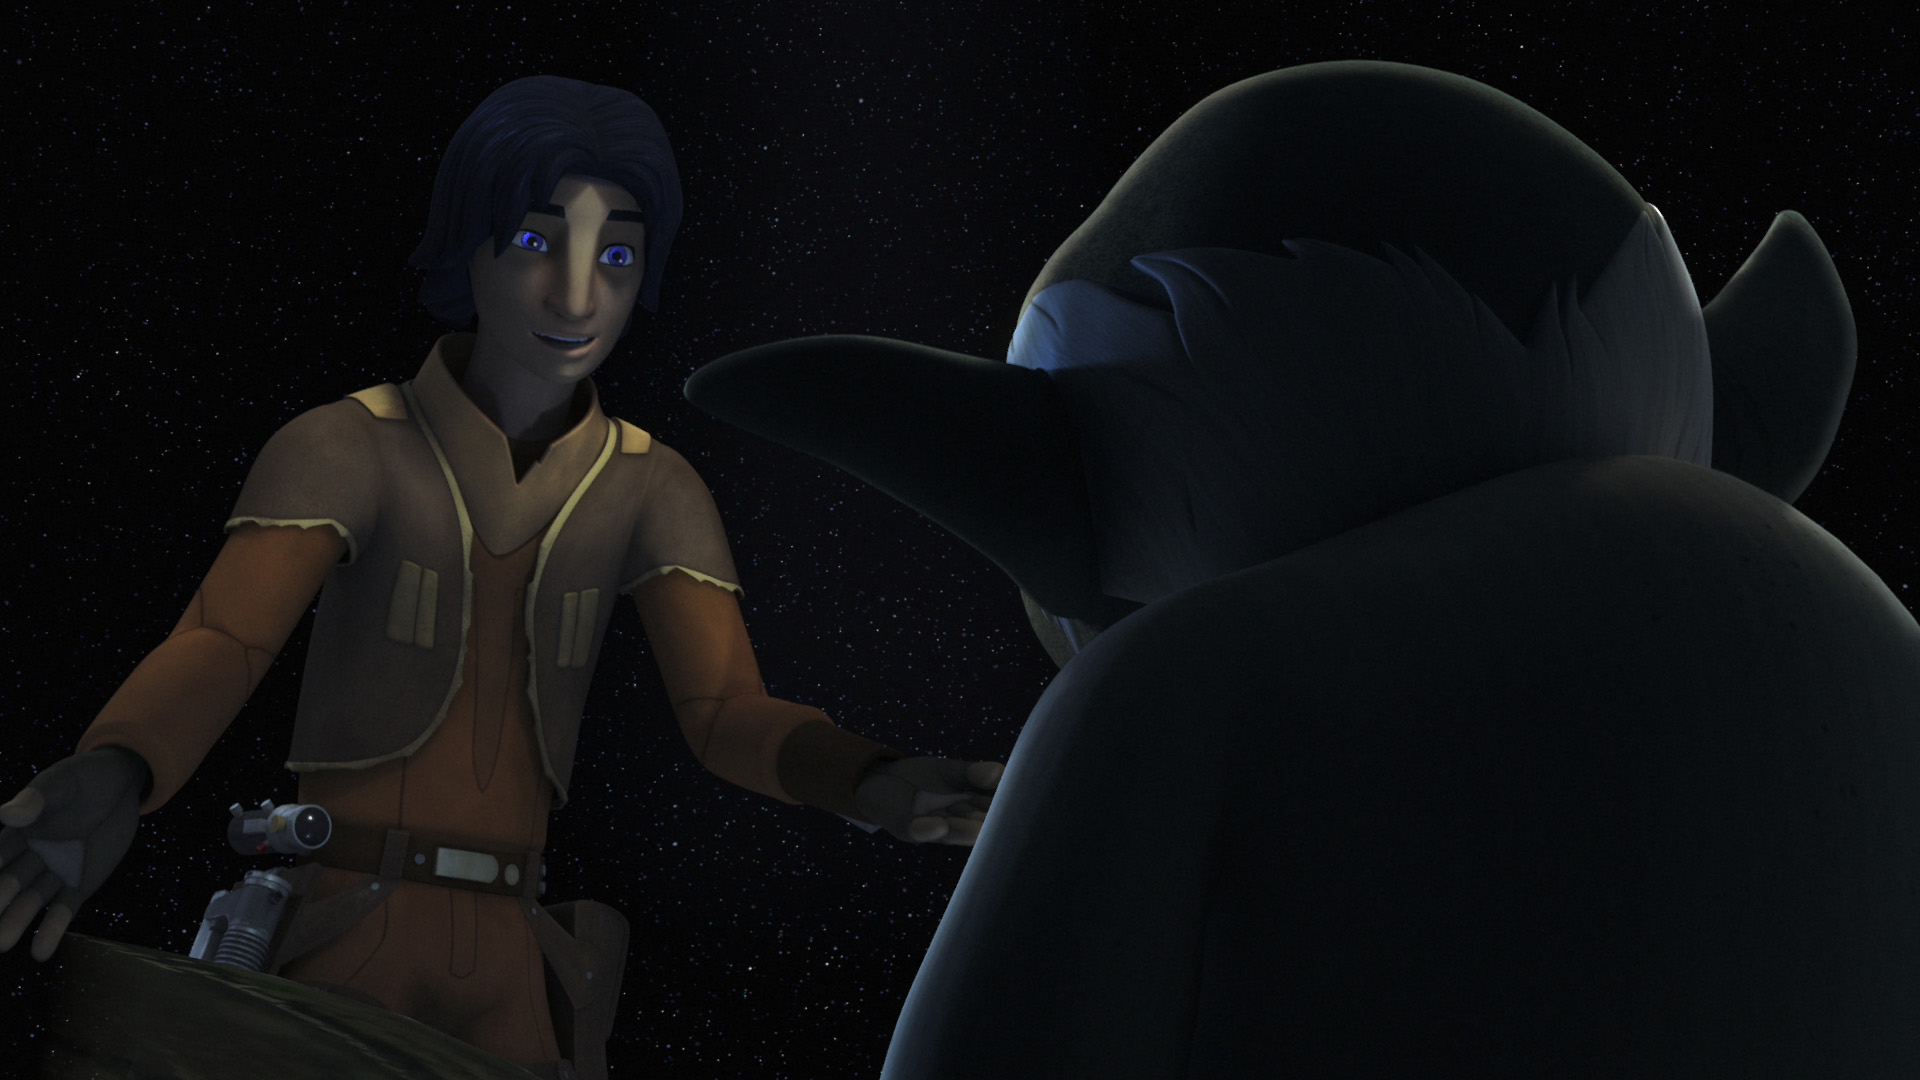 taylor gray interview on star wars rebels season two starwars com